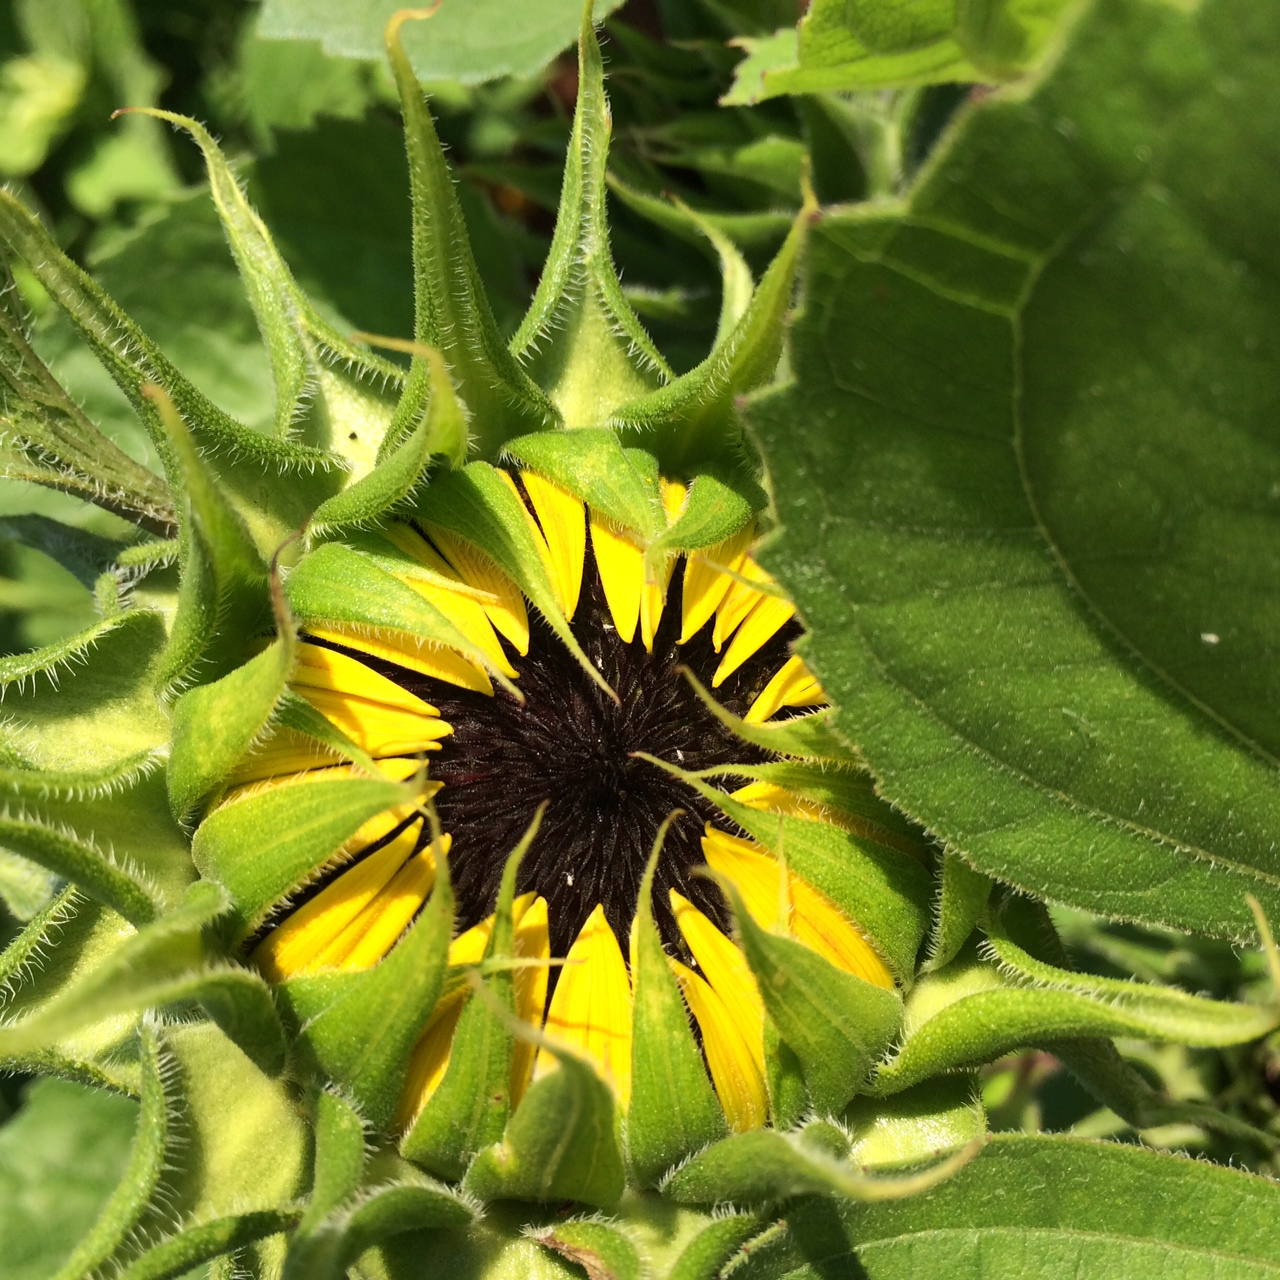 A sunflower just starting to bloom along the Main Garden Path